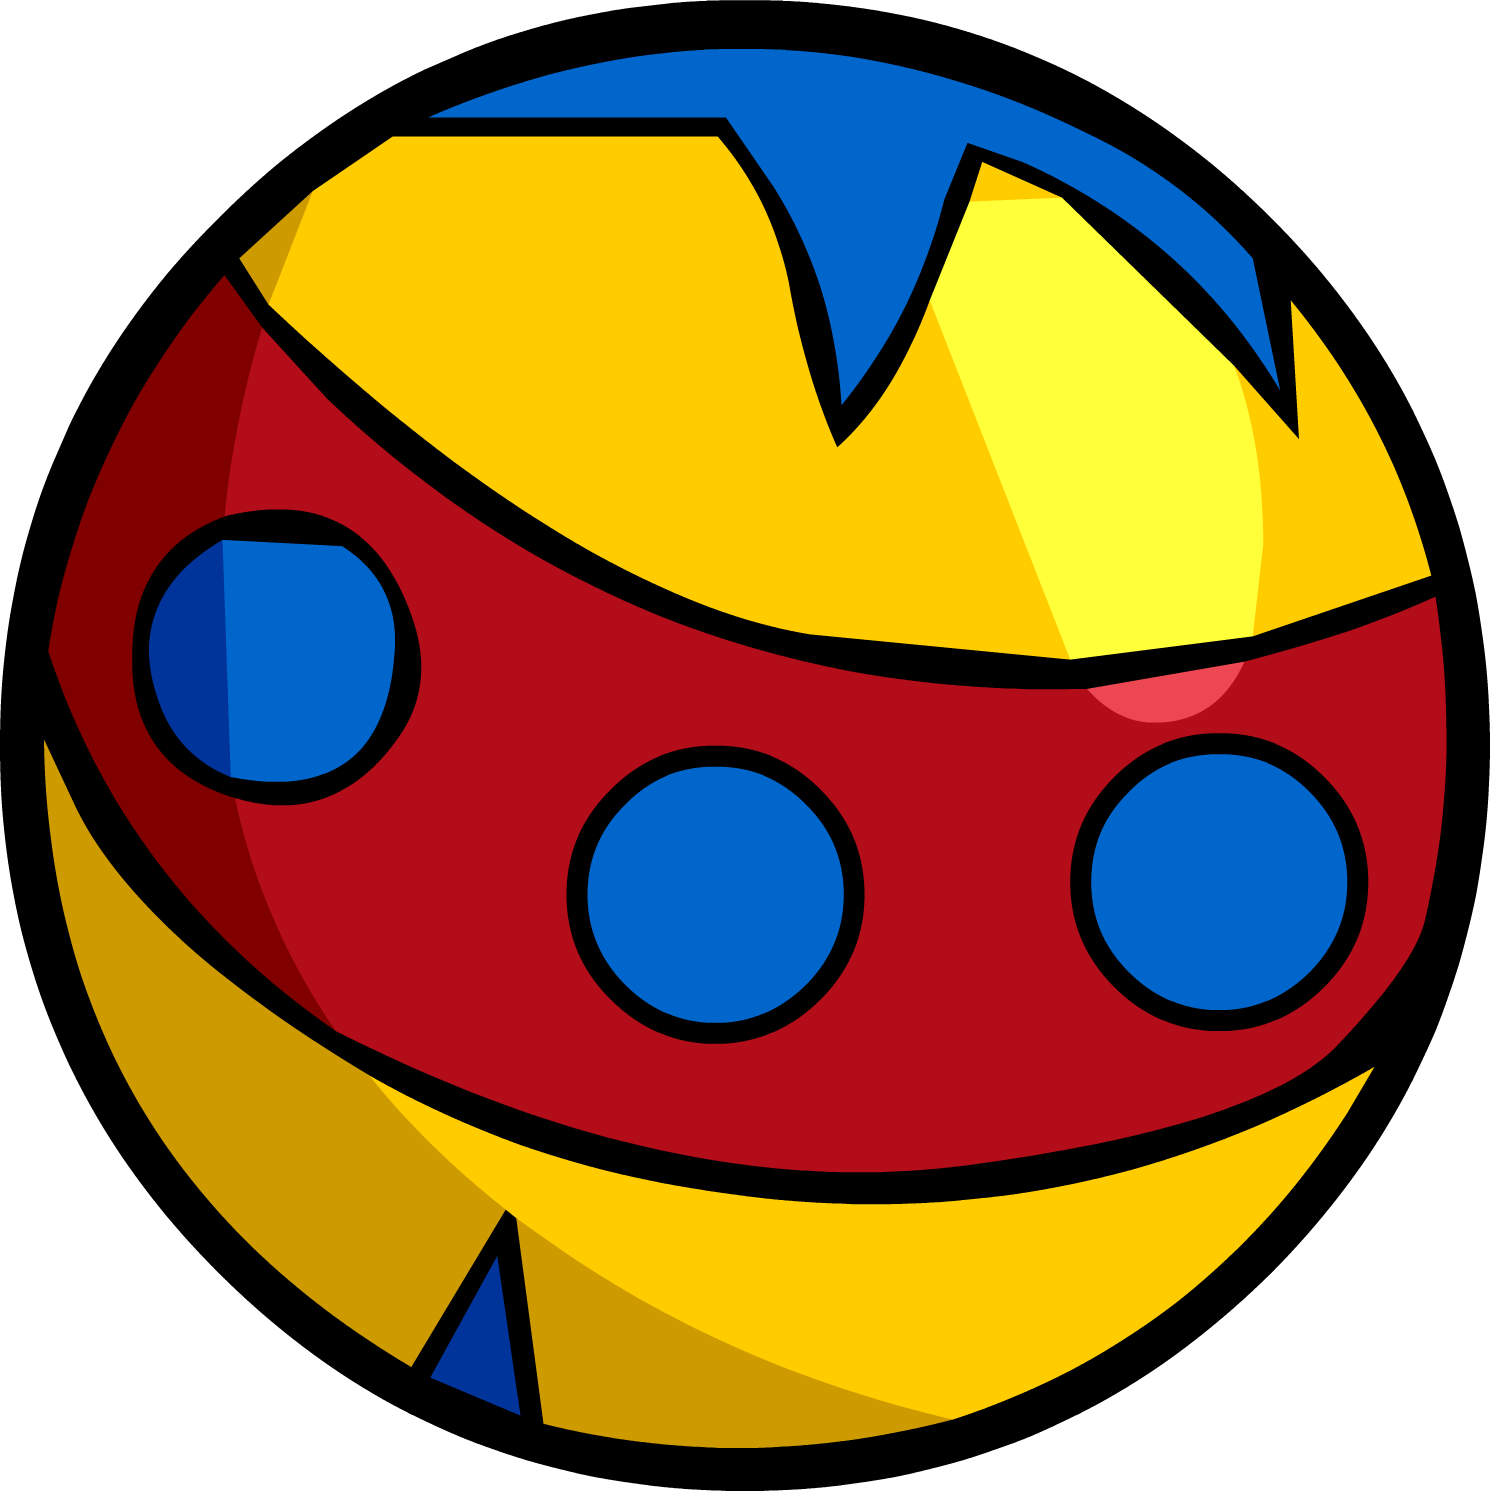 Ball clip circus. Image png club penguin